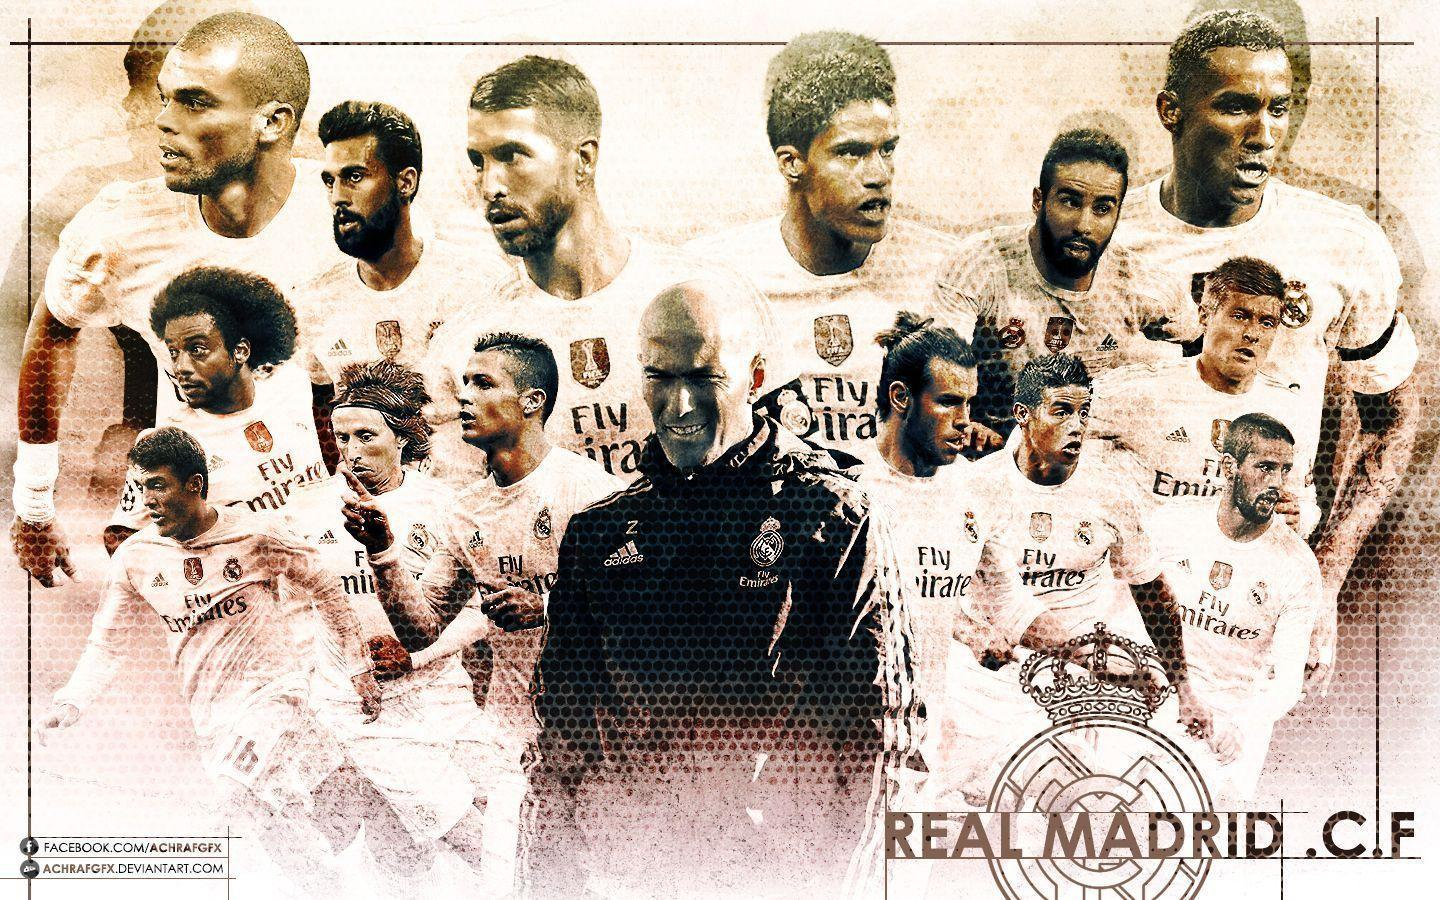 Wallpapers Real Madrid 2016 Deviantart - Wallpaper Cave